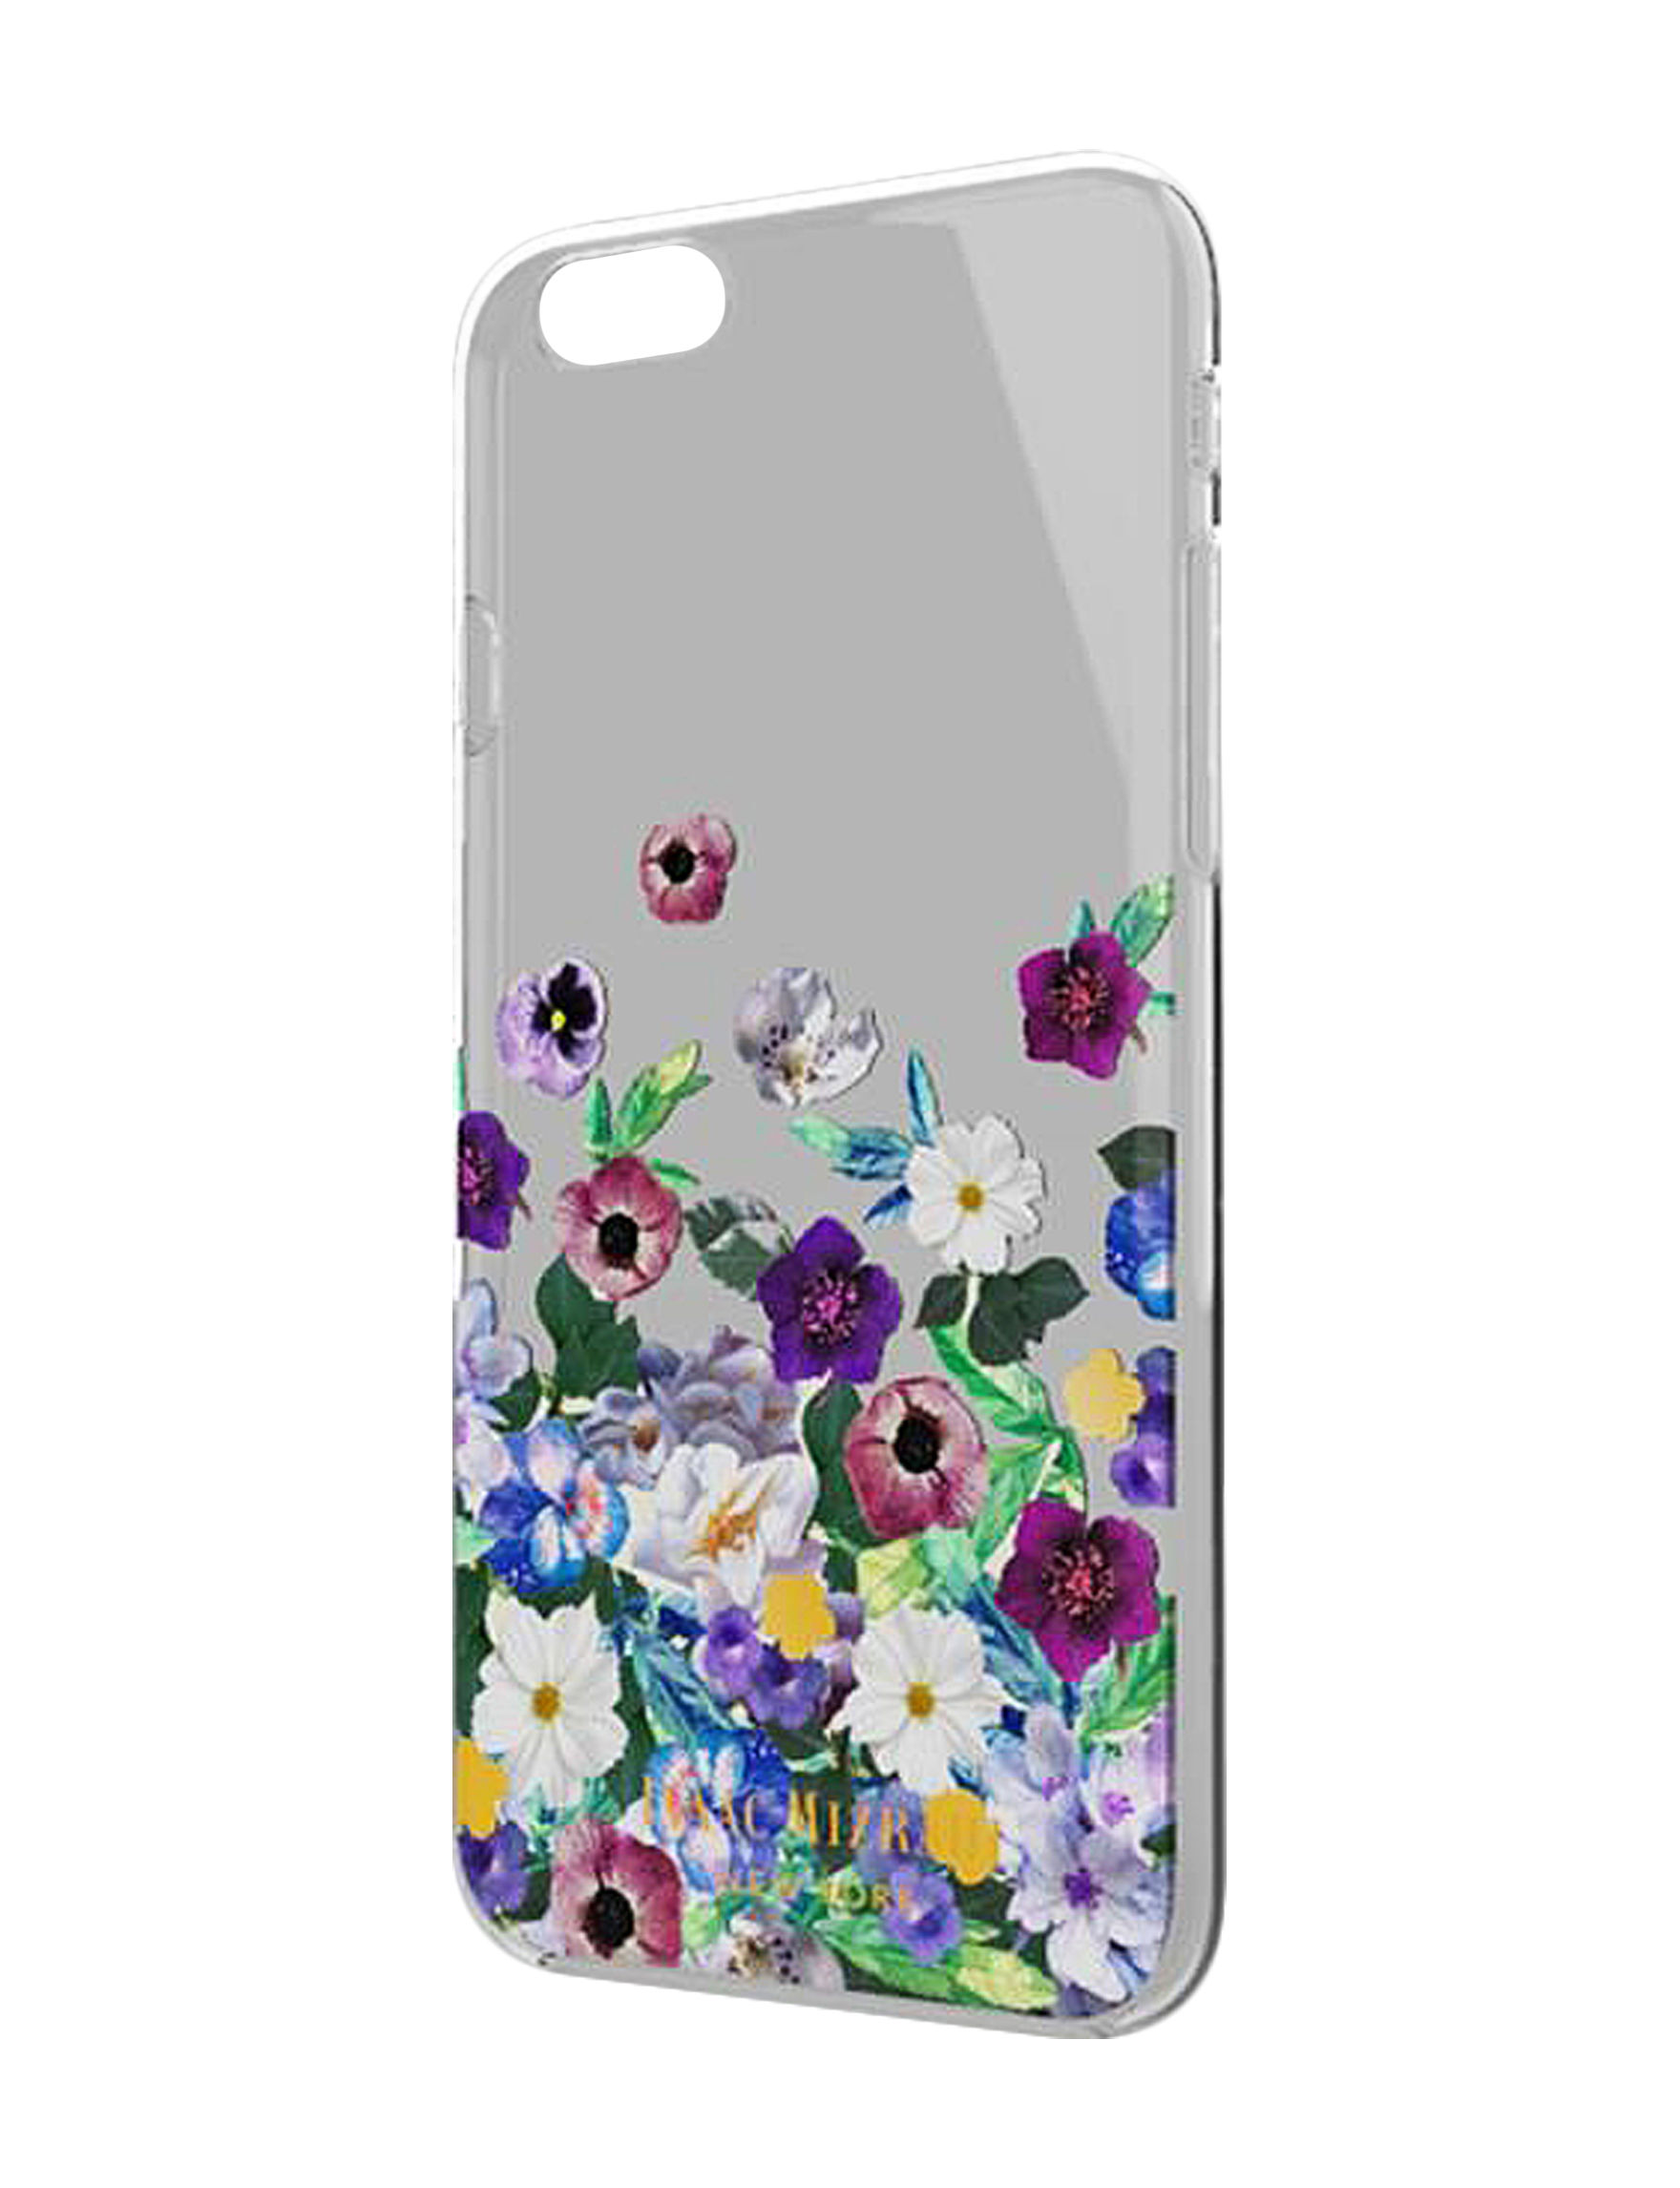 Isaac Mizrahi Clear Cases & Covers Tech Accessories